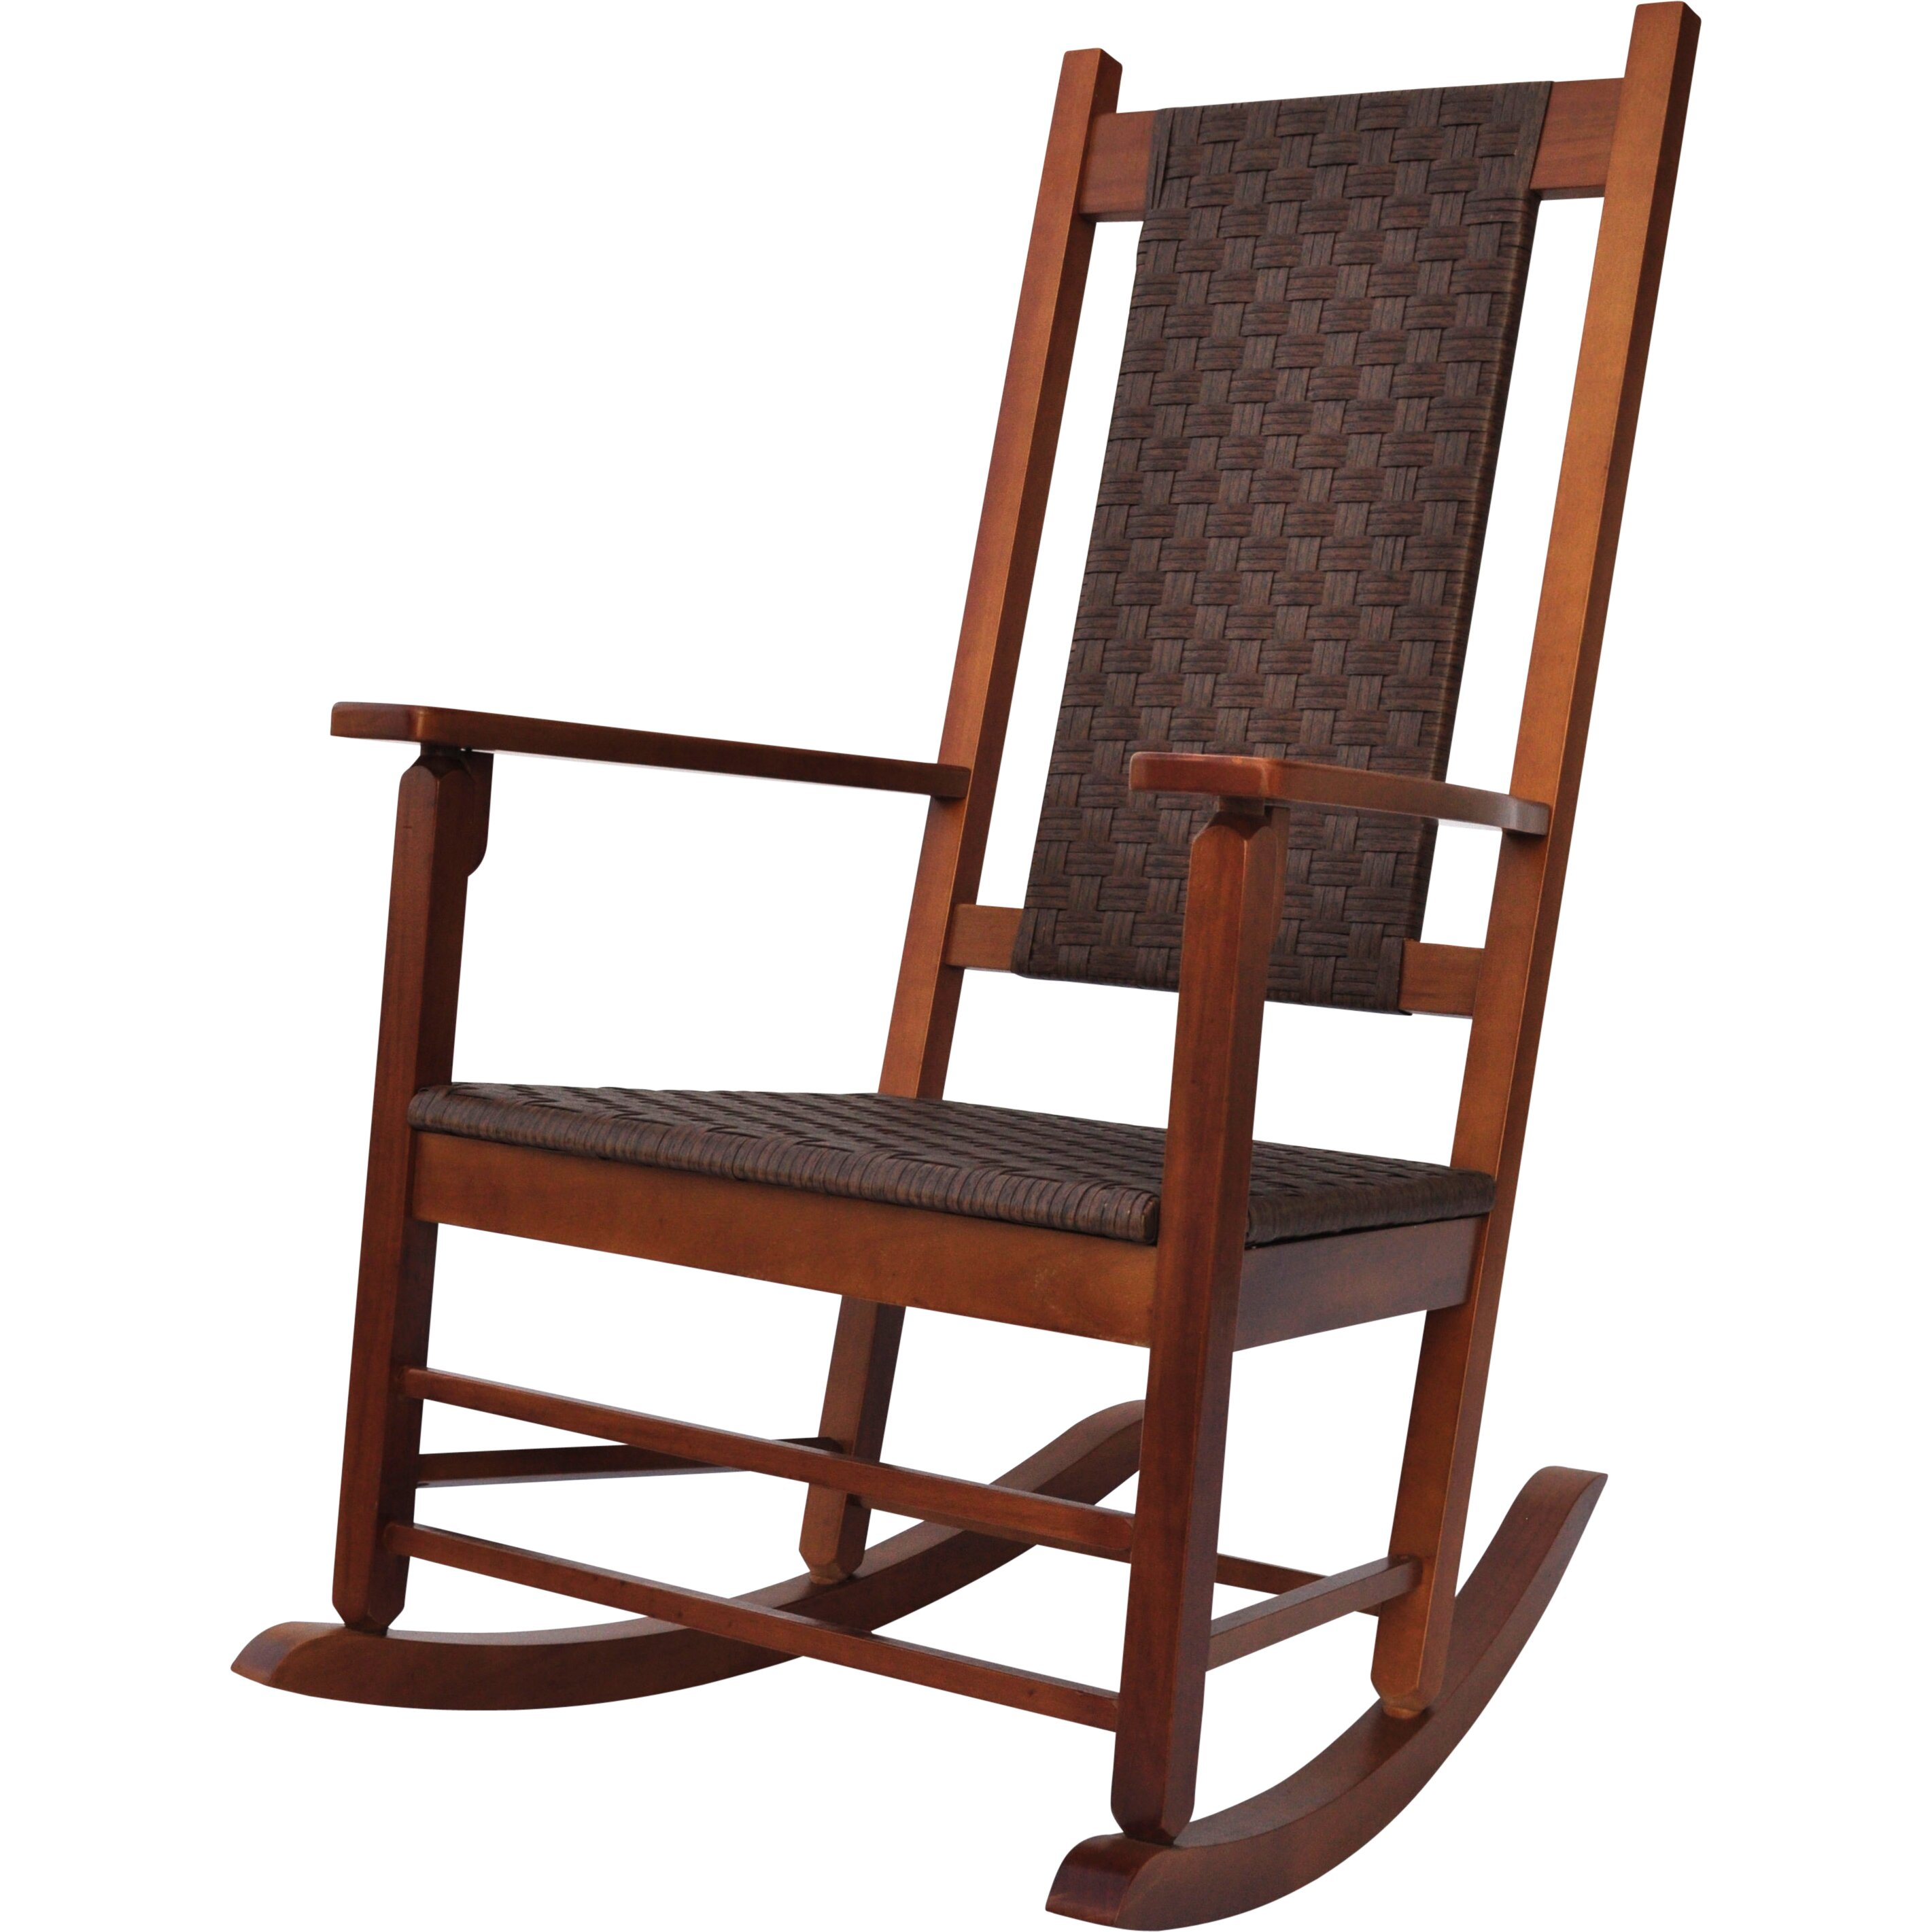 Outdoor Patio Furniture ... Wood Patio Rocking Chairs & Gliders Shine ...